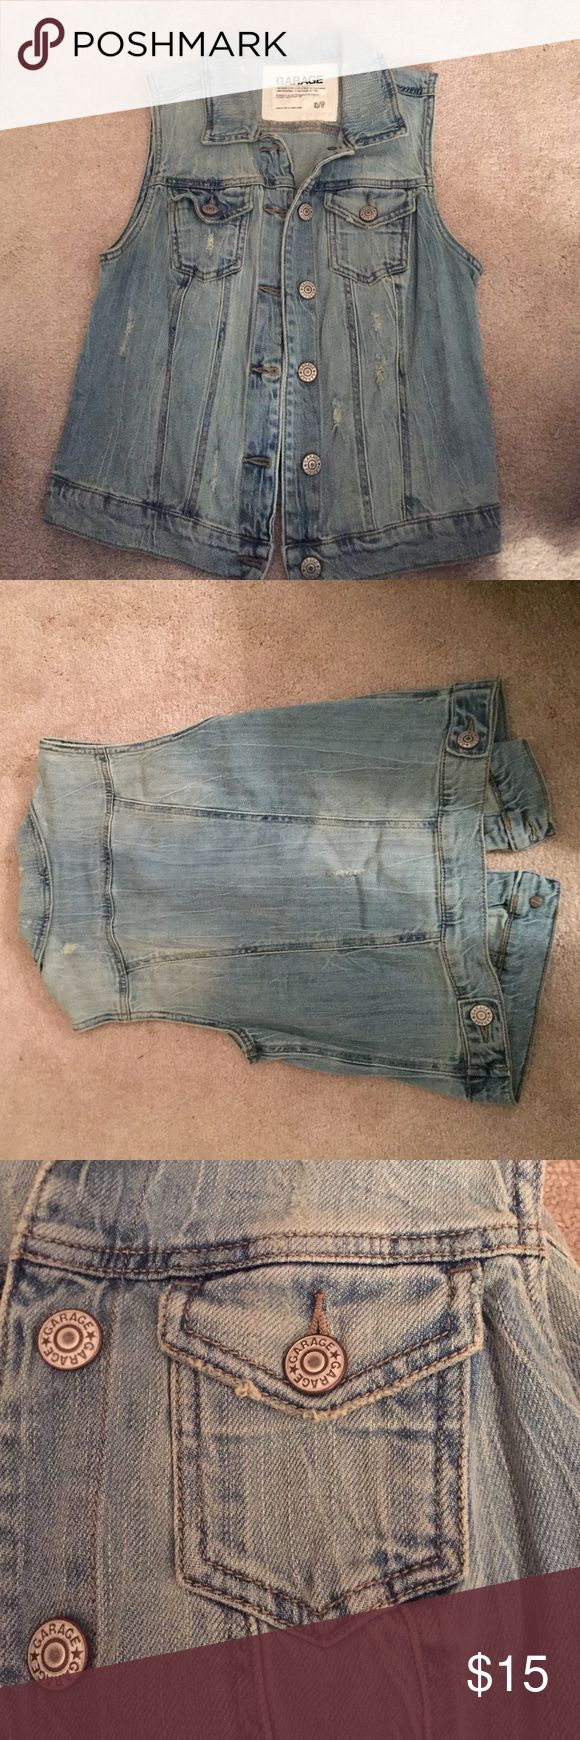 Garage Sleeveless Denim Jacket Good as new gorgeous denim jacket! Can be worn over anything! Has only been worn a few times. Garage Jackets & Coats Vests